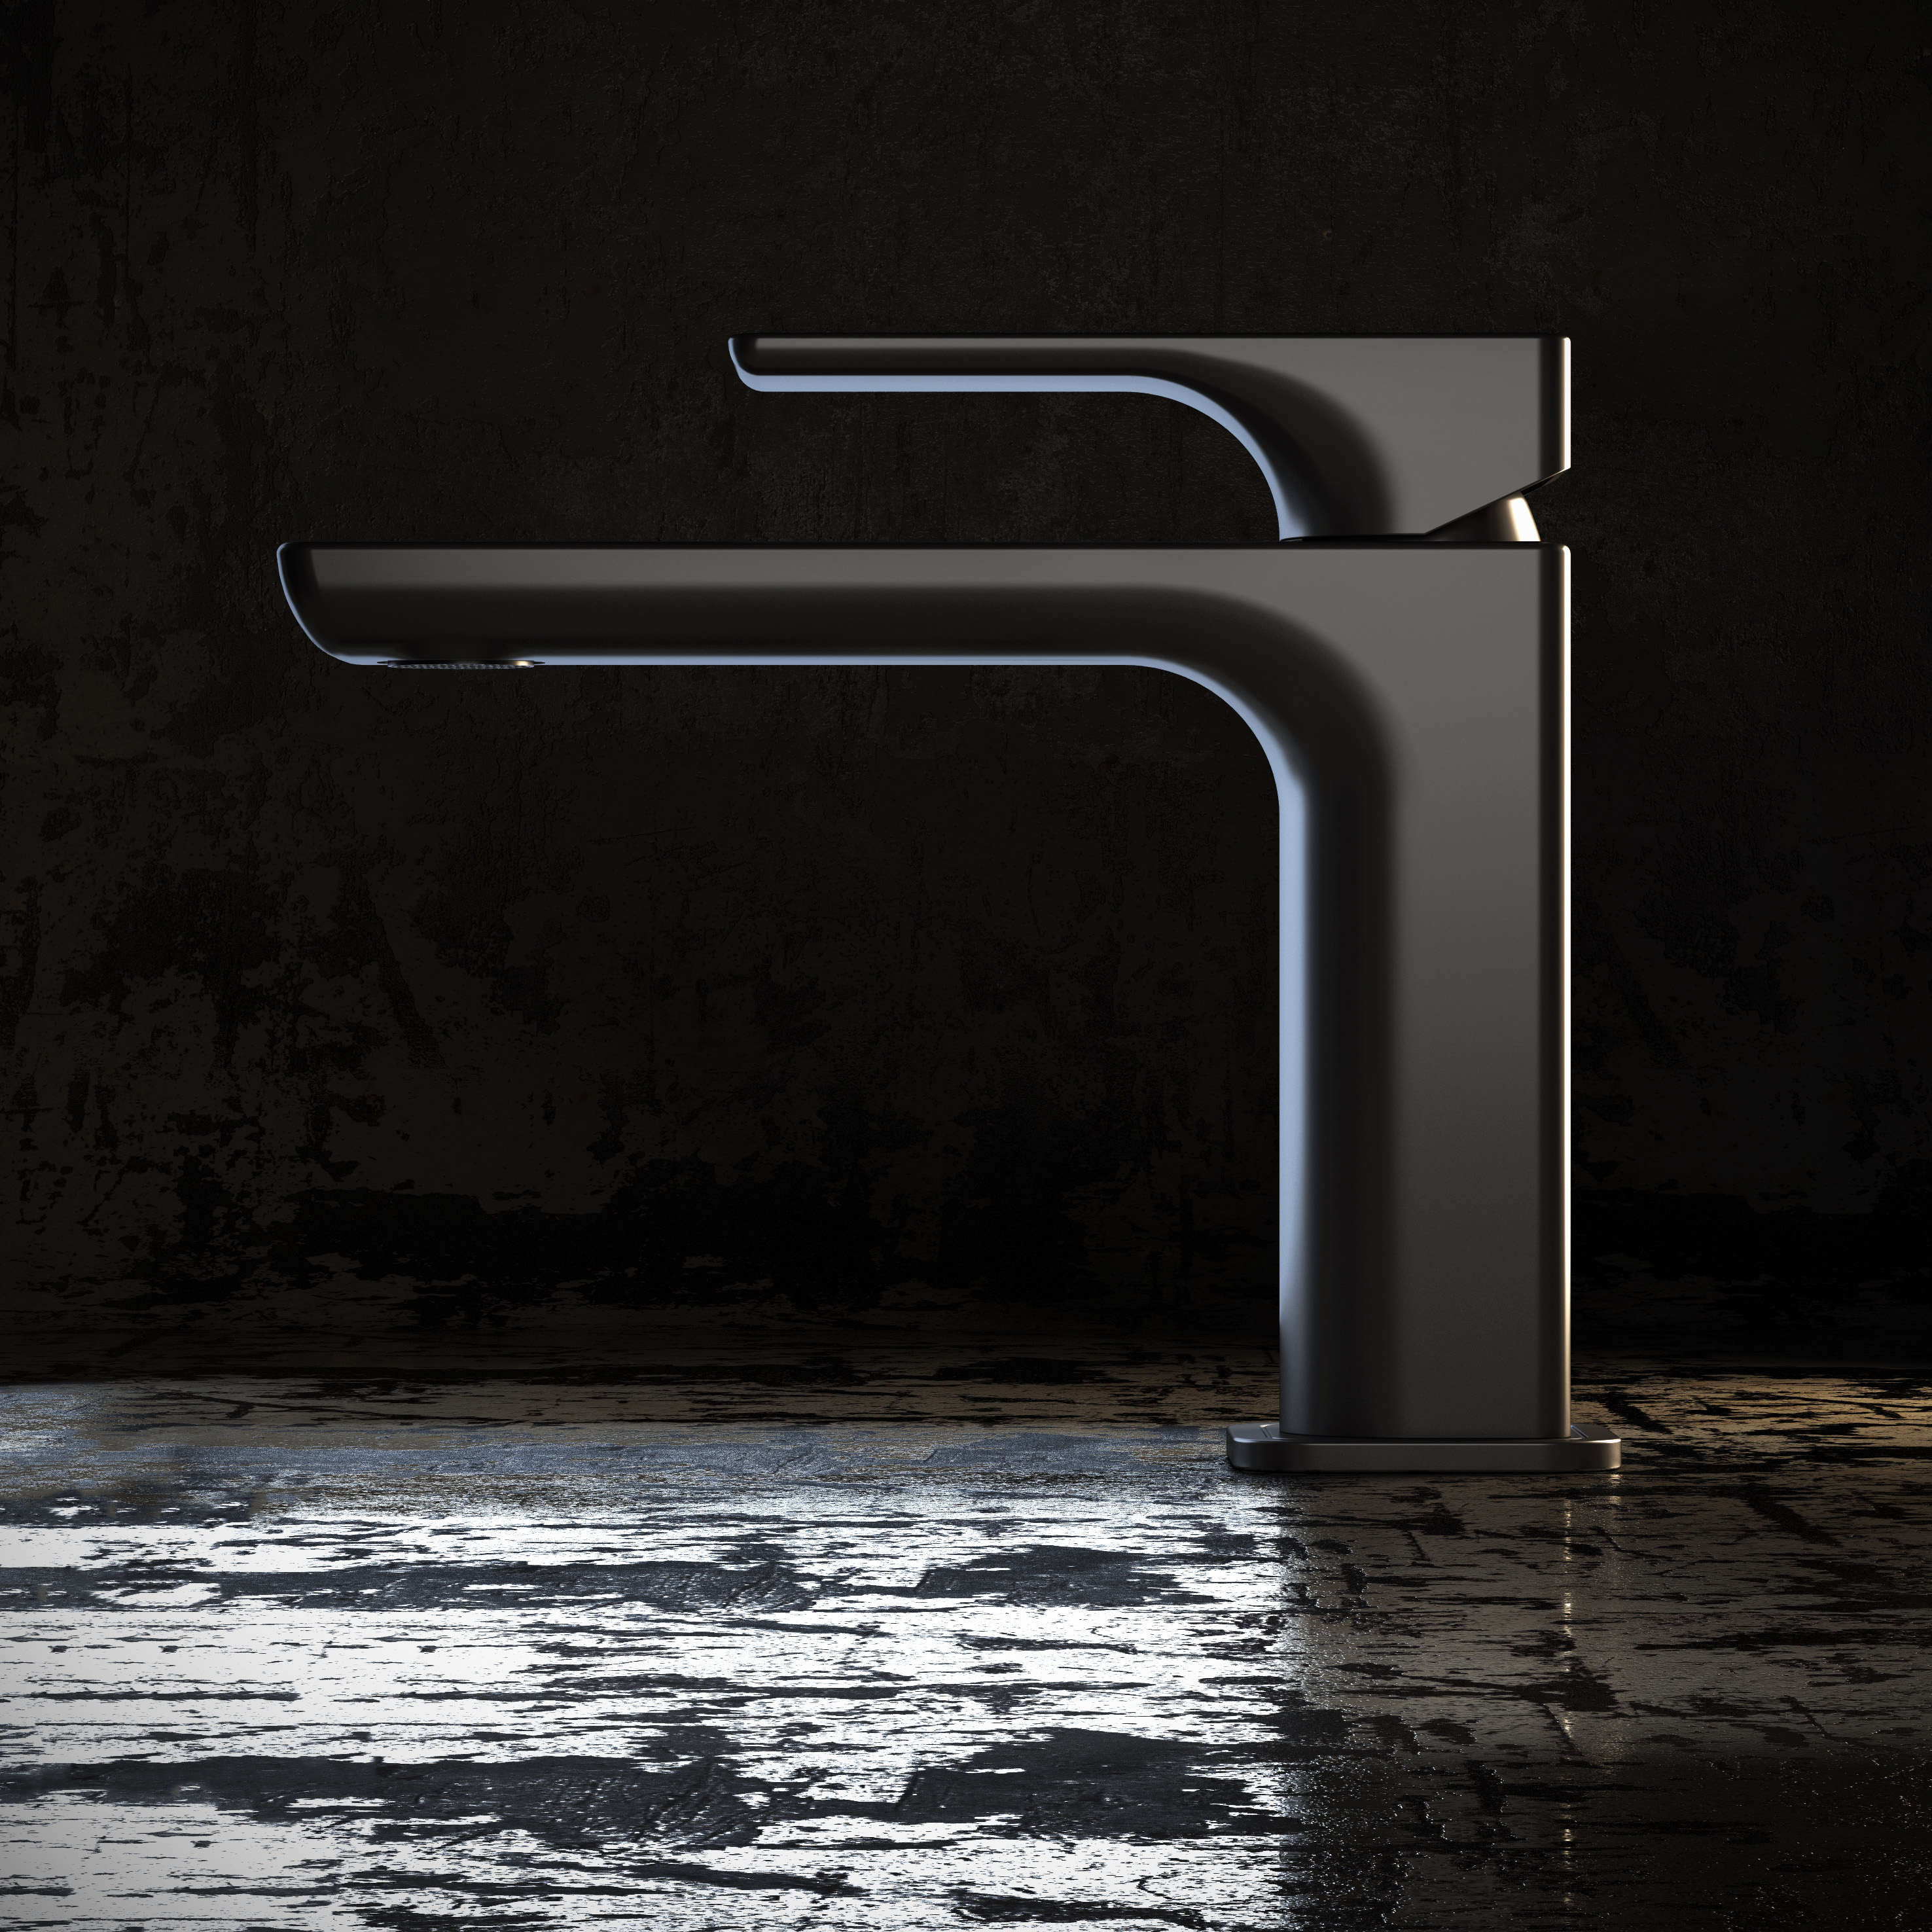 HASK BY TREEMME RUBINETTERIE - Design Diffusion